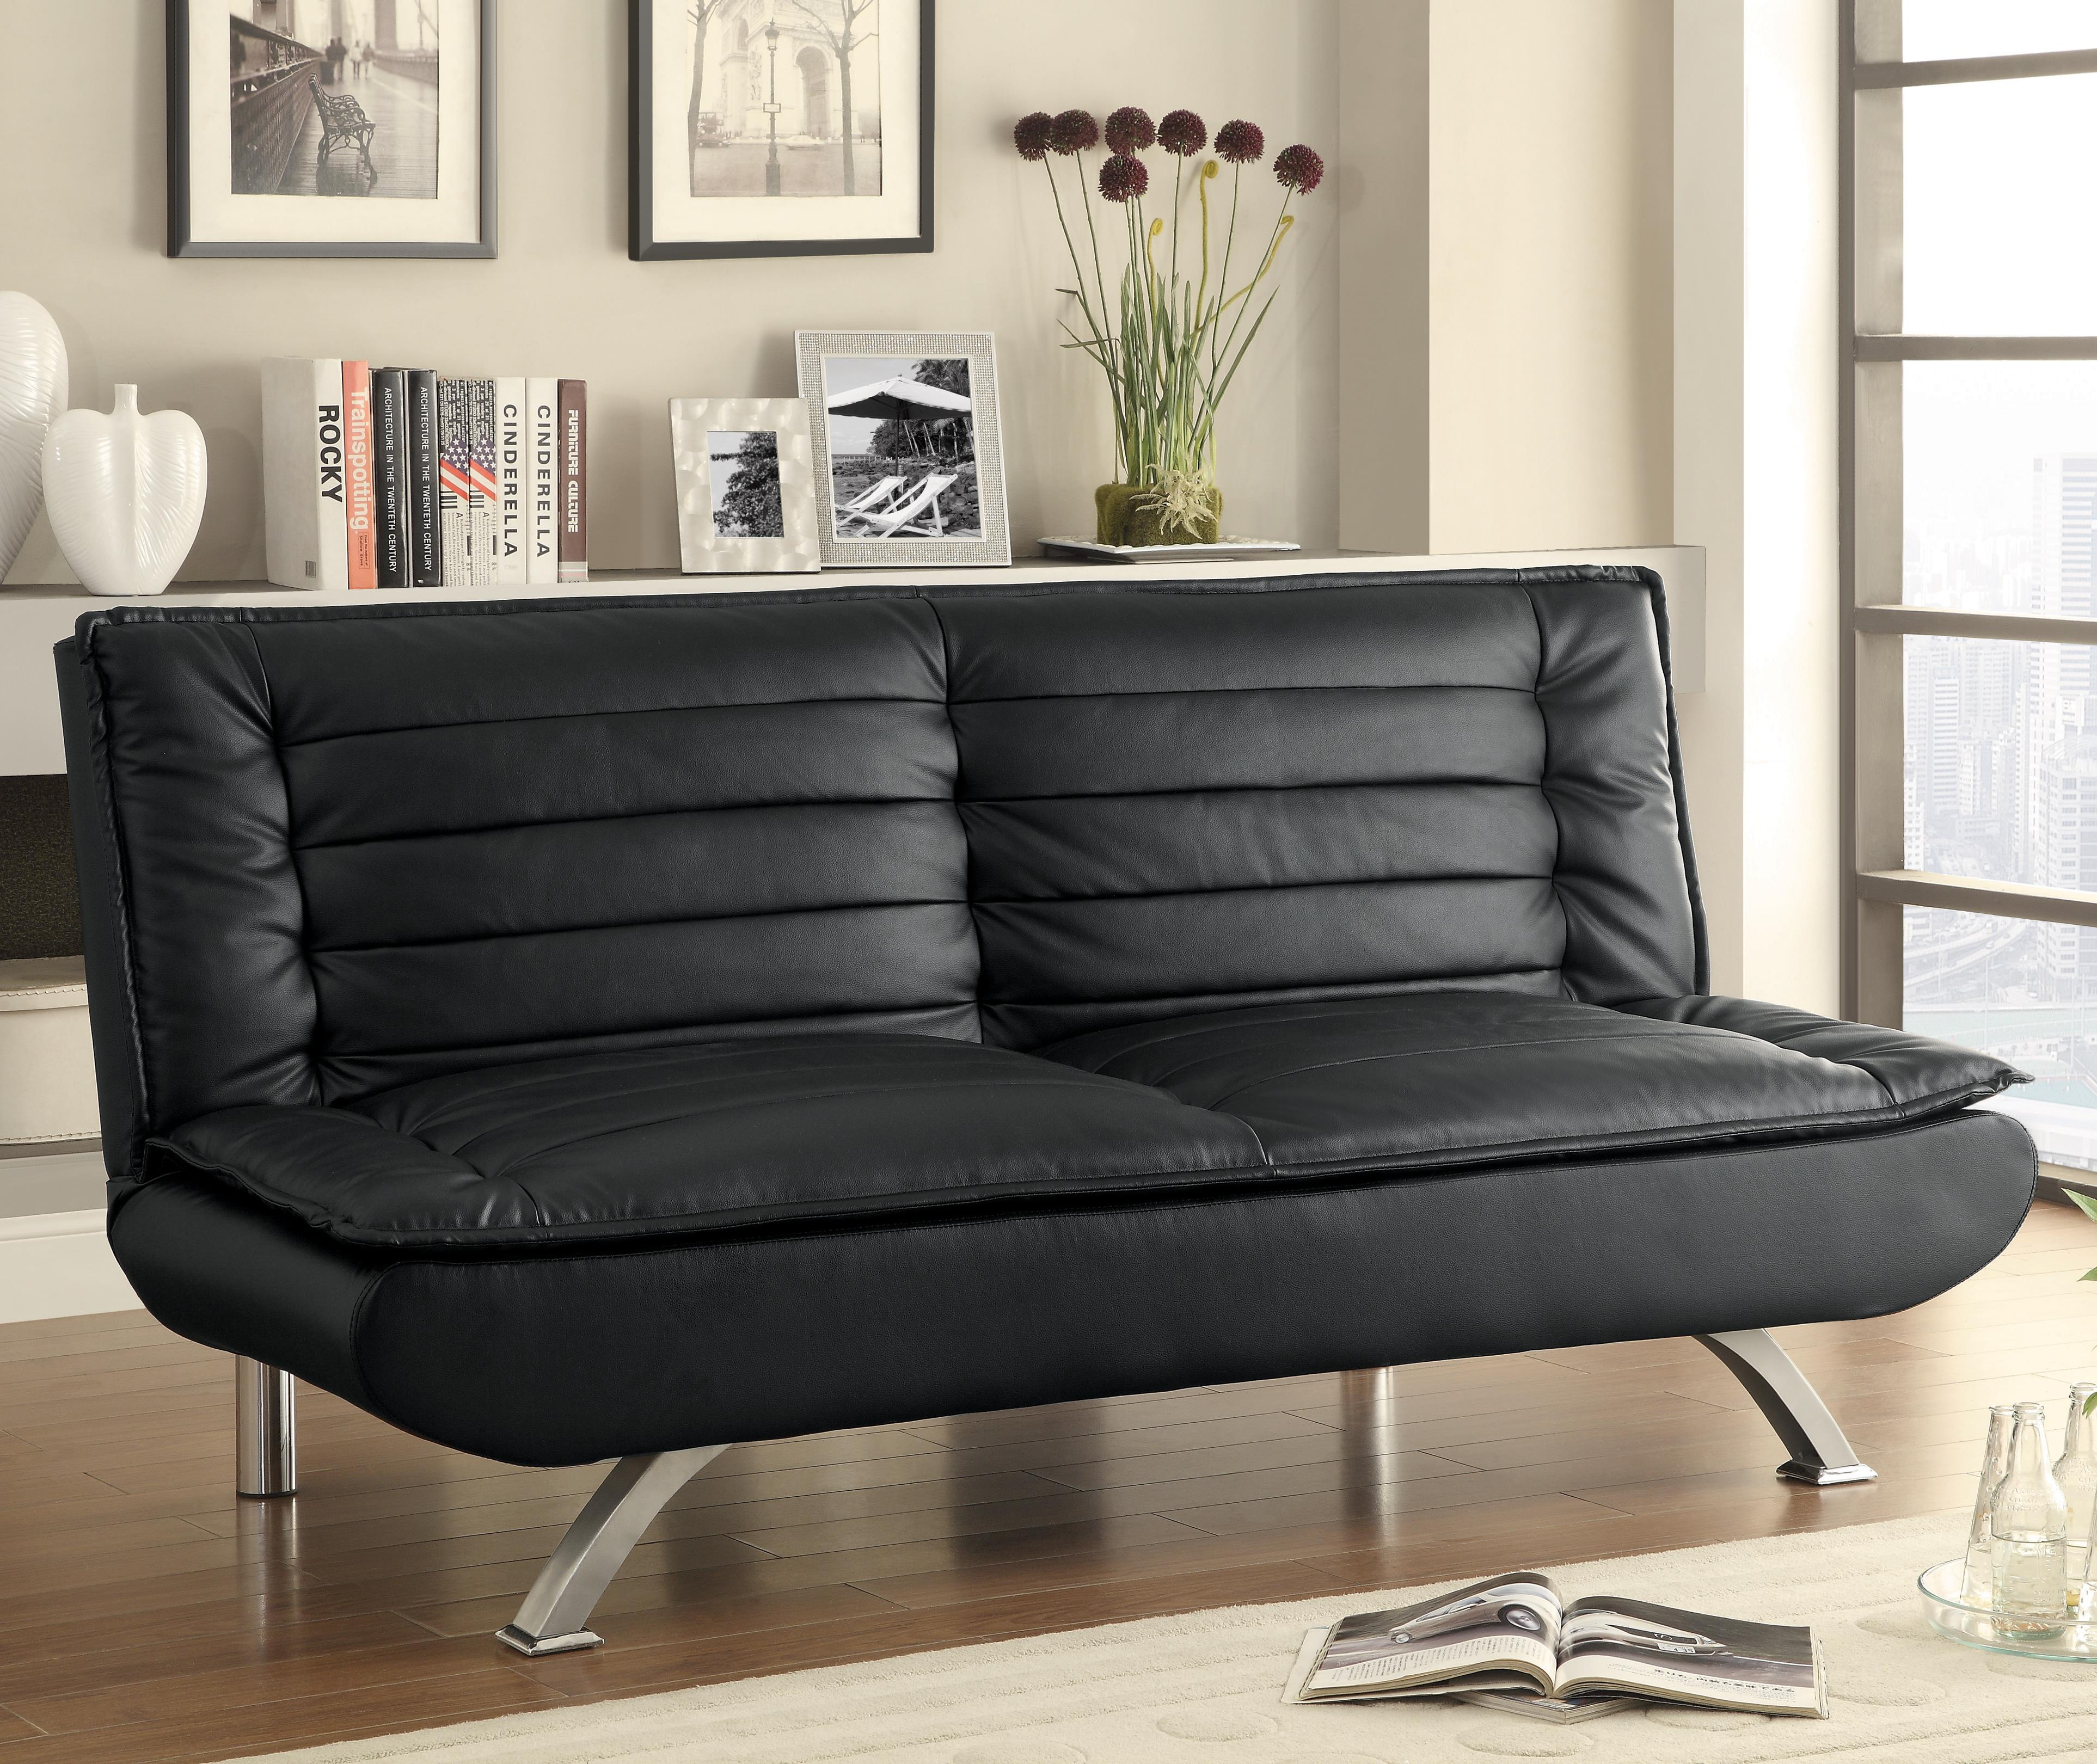 Coaster Sofa Beds and Futons -  Sofa Bed - Item Number: 500055